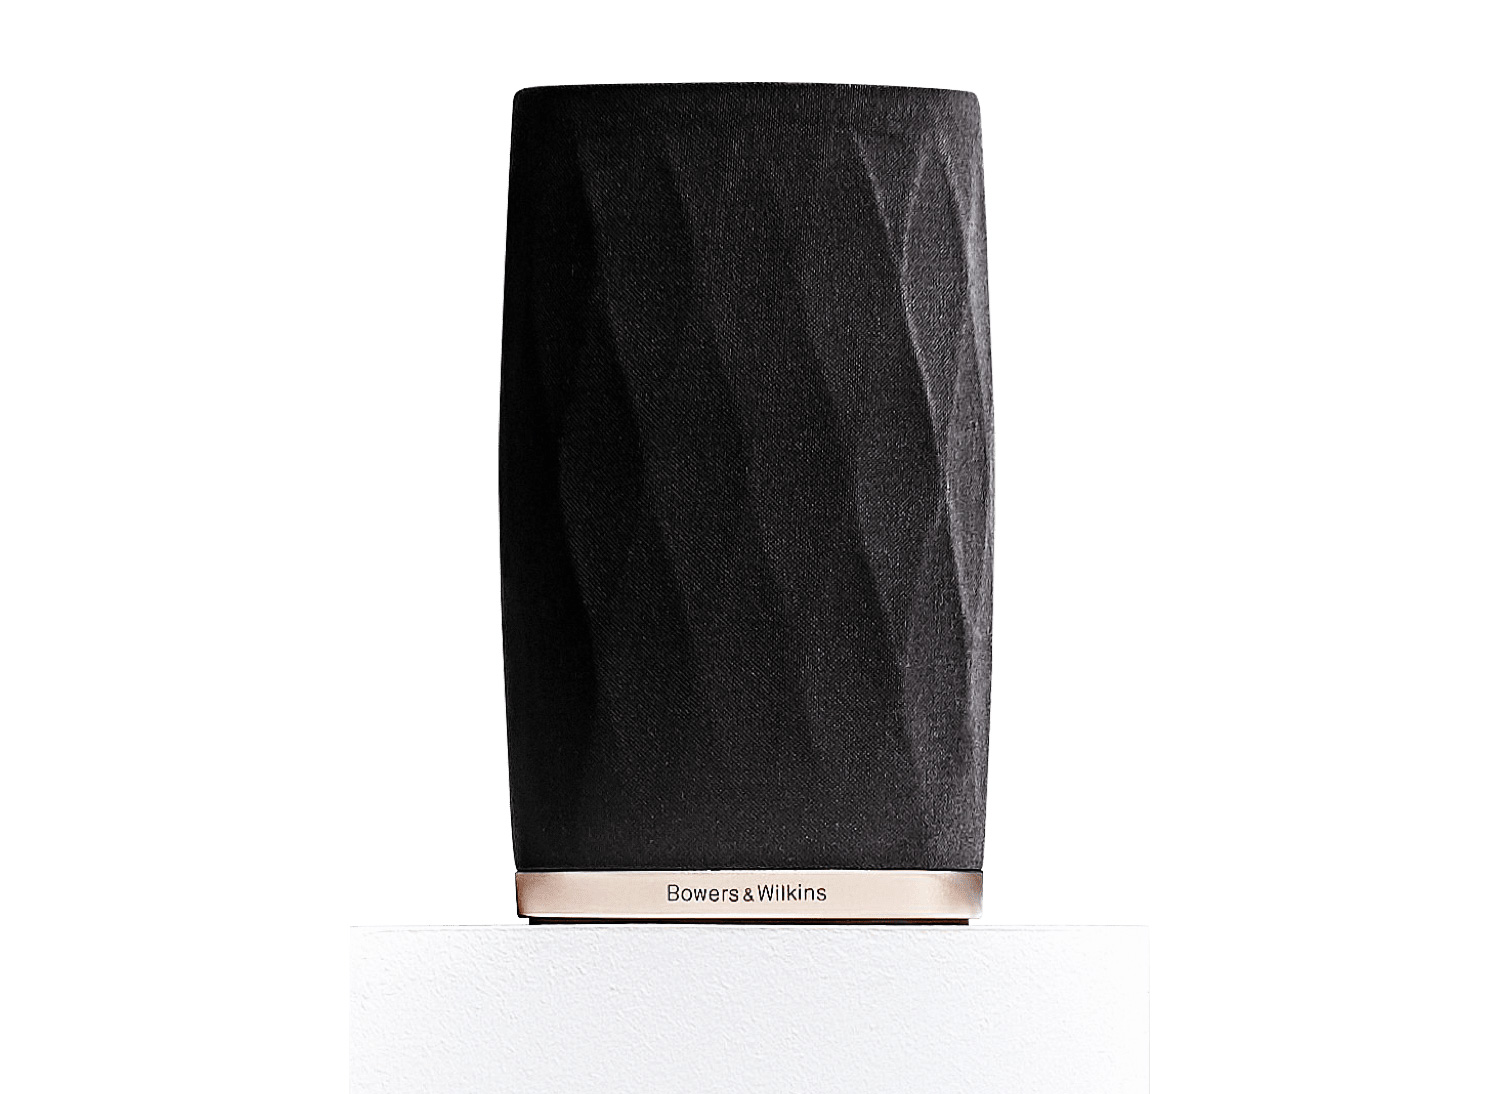 Bowers & Wilkins Introduces 24-Bit Formation Flex Home Speaker at werd.com